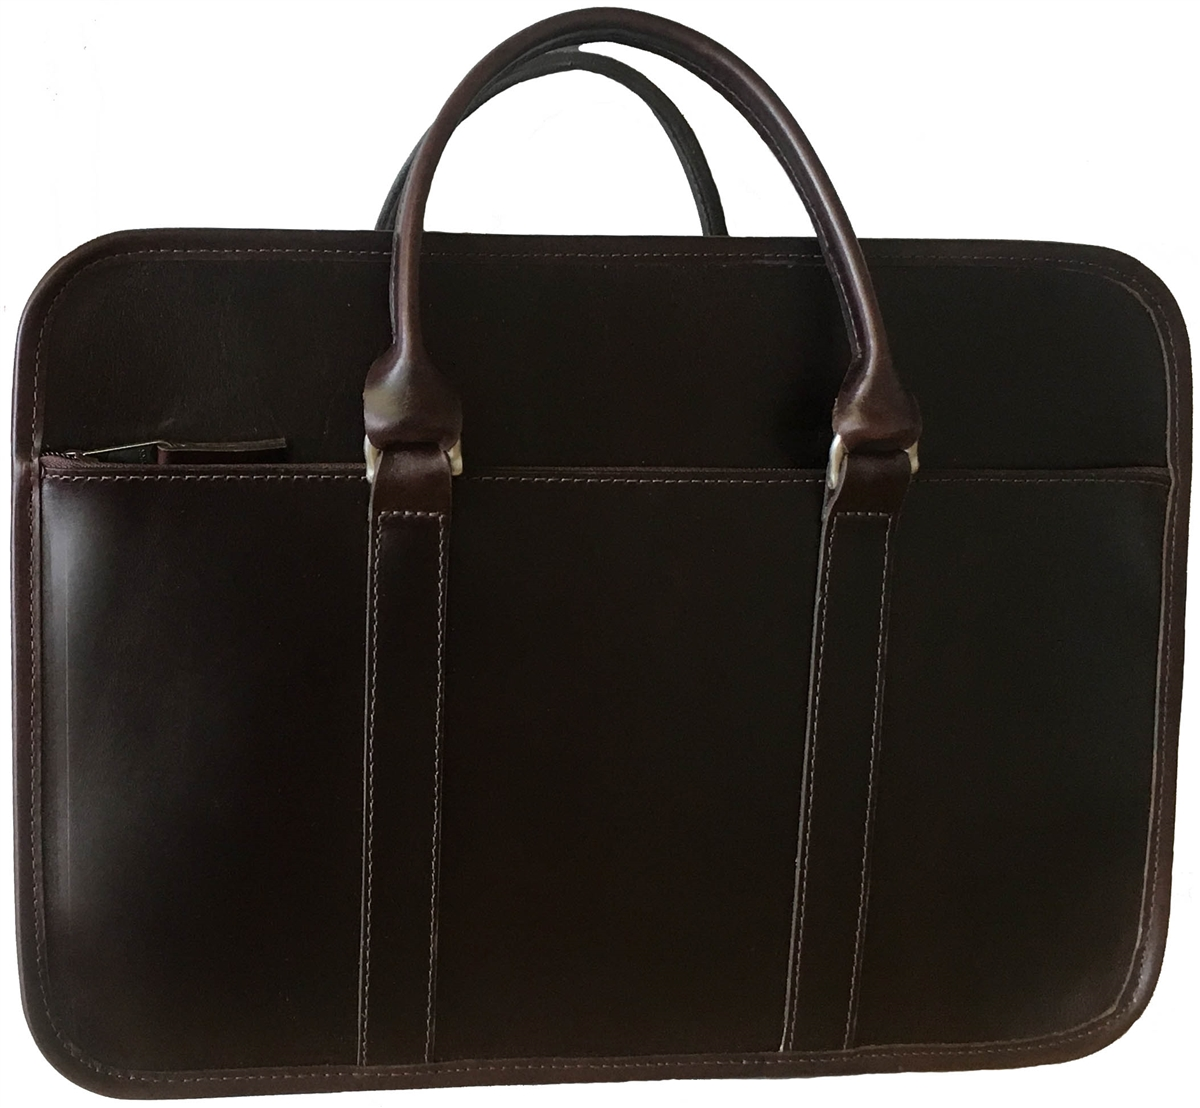 bfde0f7b9 Arbitrator Leather Briefcase by Custom Hide · Larger Photo Email A Friend